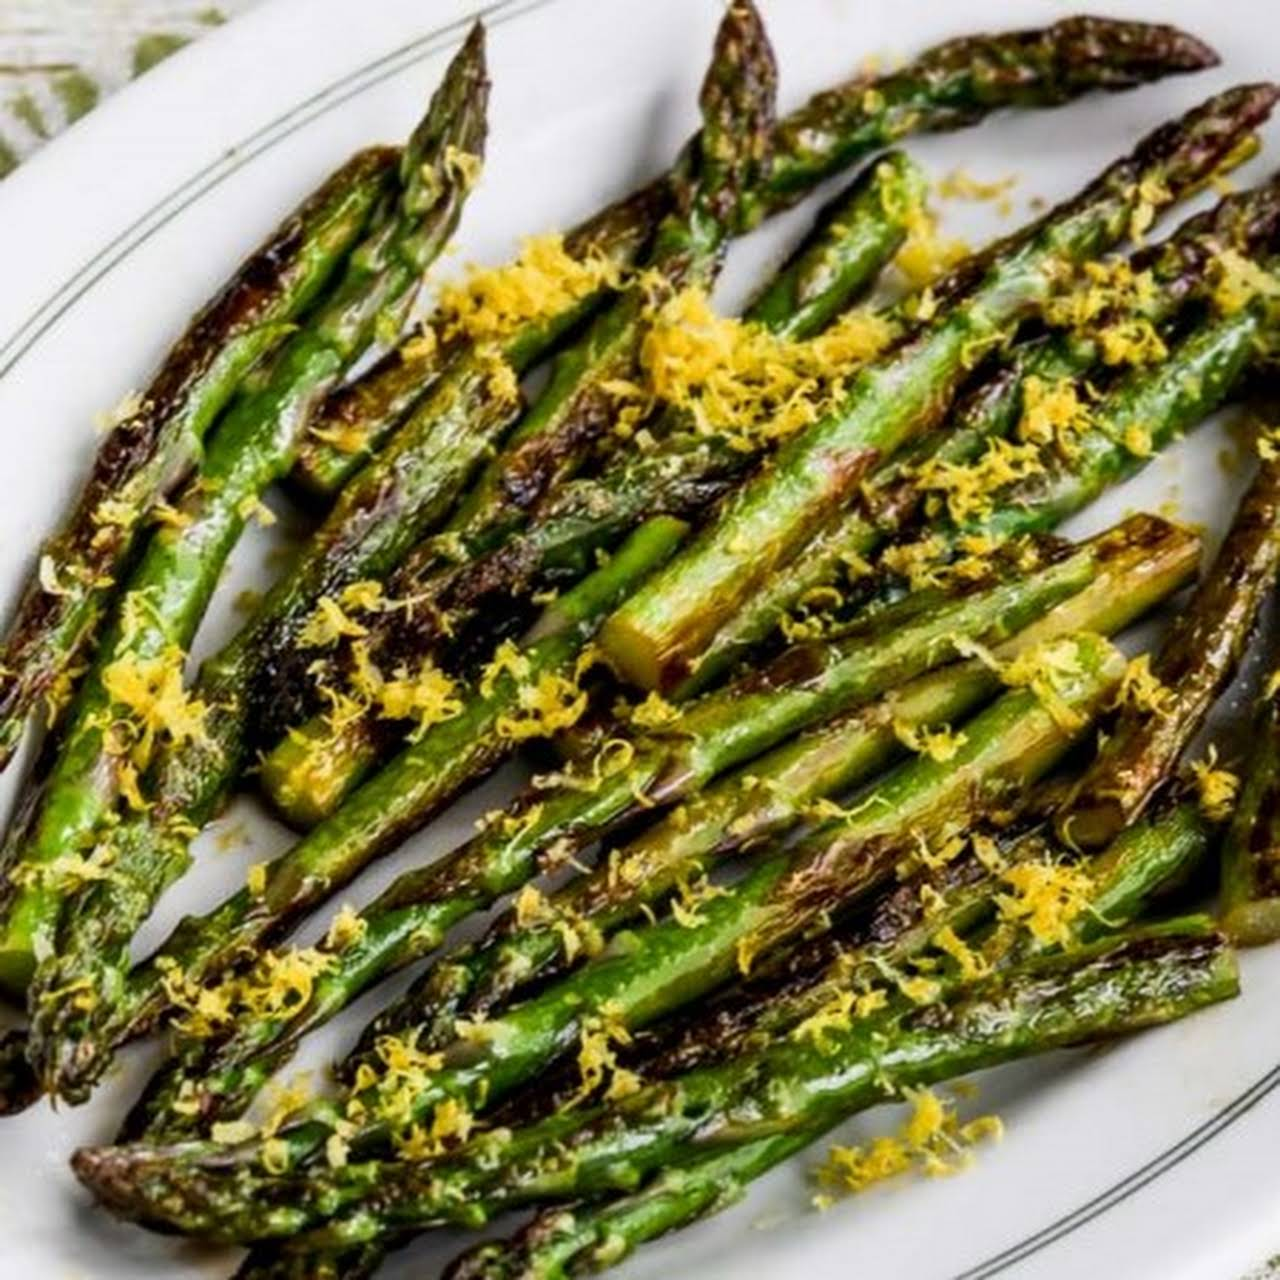 Pan-Fried Asparagus Tips  taking into account bearing in mind Lemon Juice and Lemon Zest